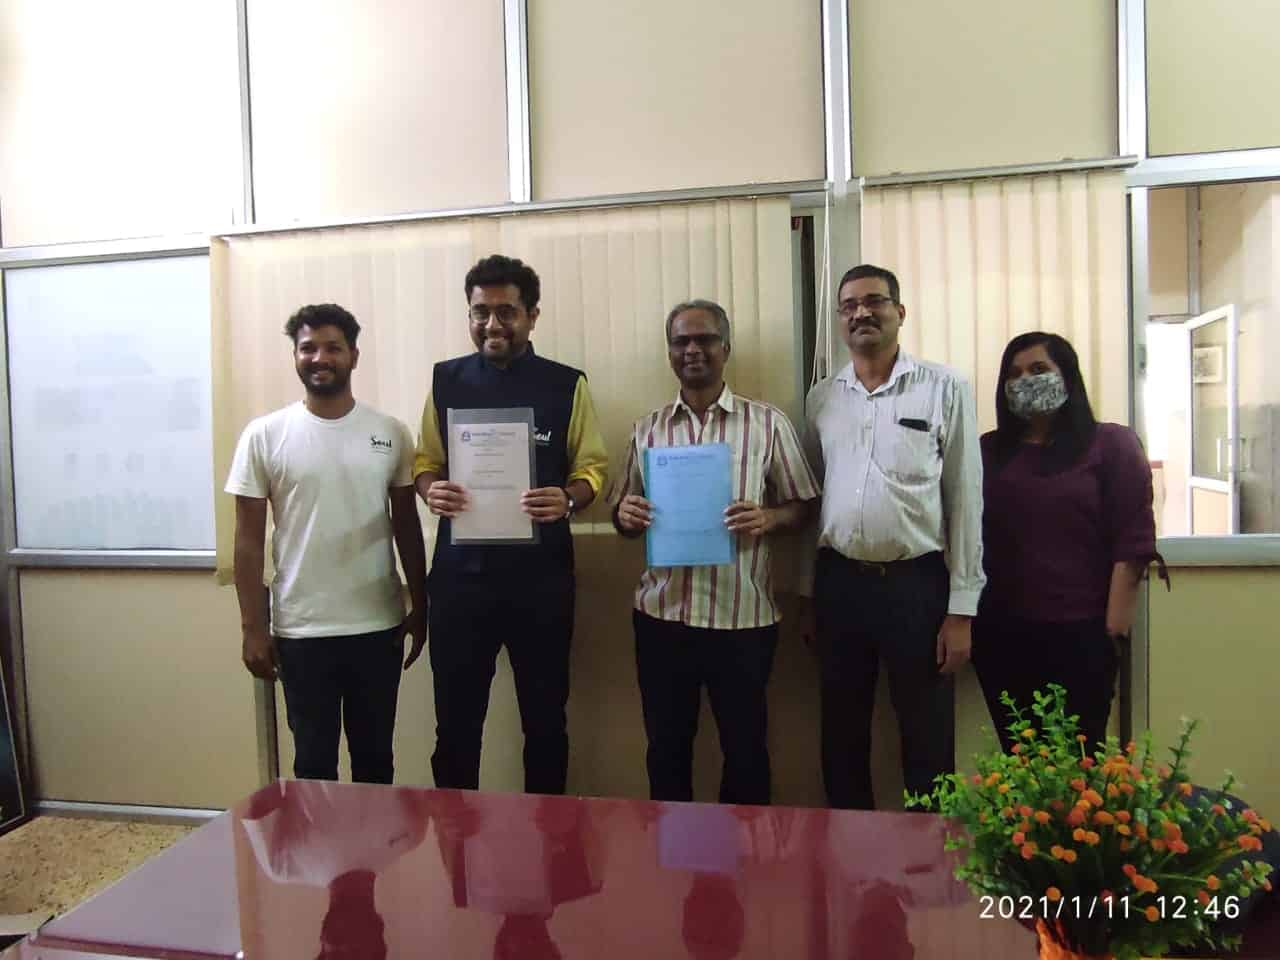 Rev. Fr. Joaquim Lobo, Director of Don Bosco College, Panjim, and Mr. Varun Hegde, Founder of Untraced Paths Travellers LLP in the presence of Principal, Dr. Cedric Silveira, Department Coordinator Ms. Steffi Dias, along with Assistant Professors Sneha Sawant, Twinkle Fernandes and Gilbert Mendes of the Travel and Tourism department during the during the partnership signing in Don Bosco College Panjim, India